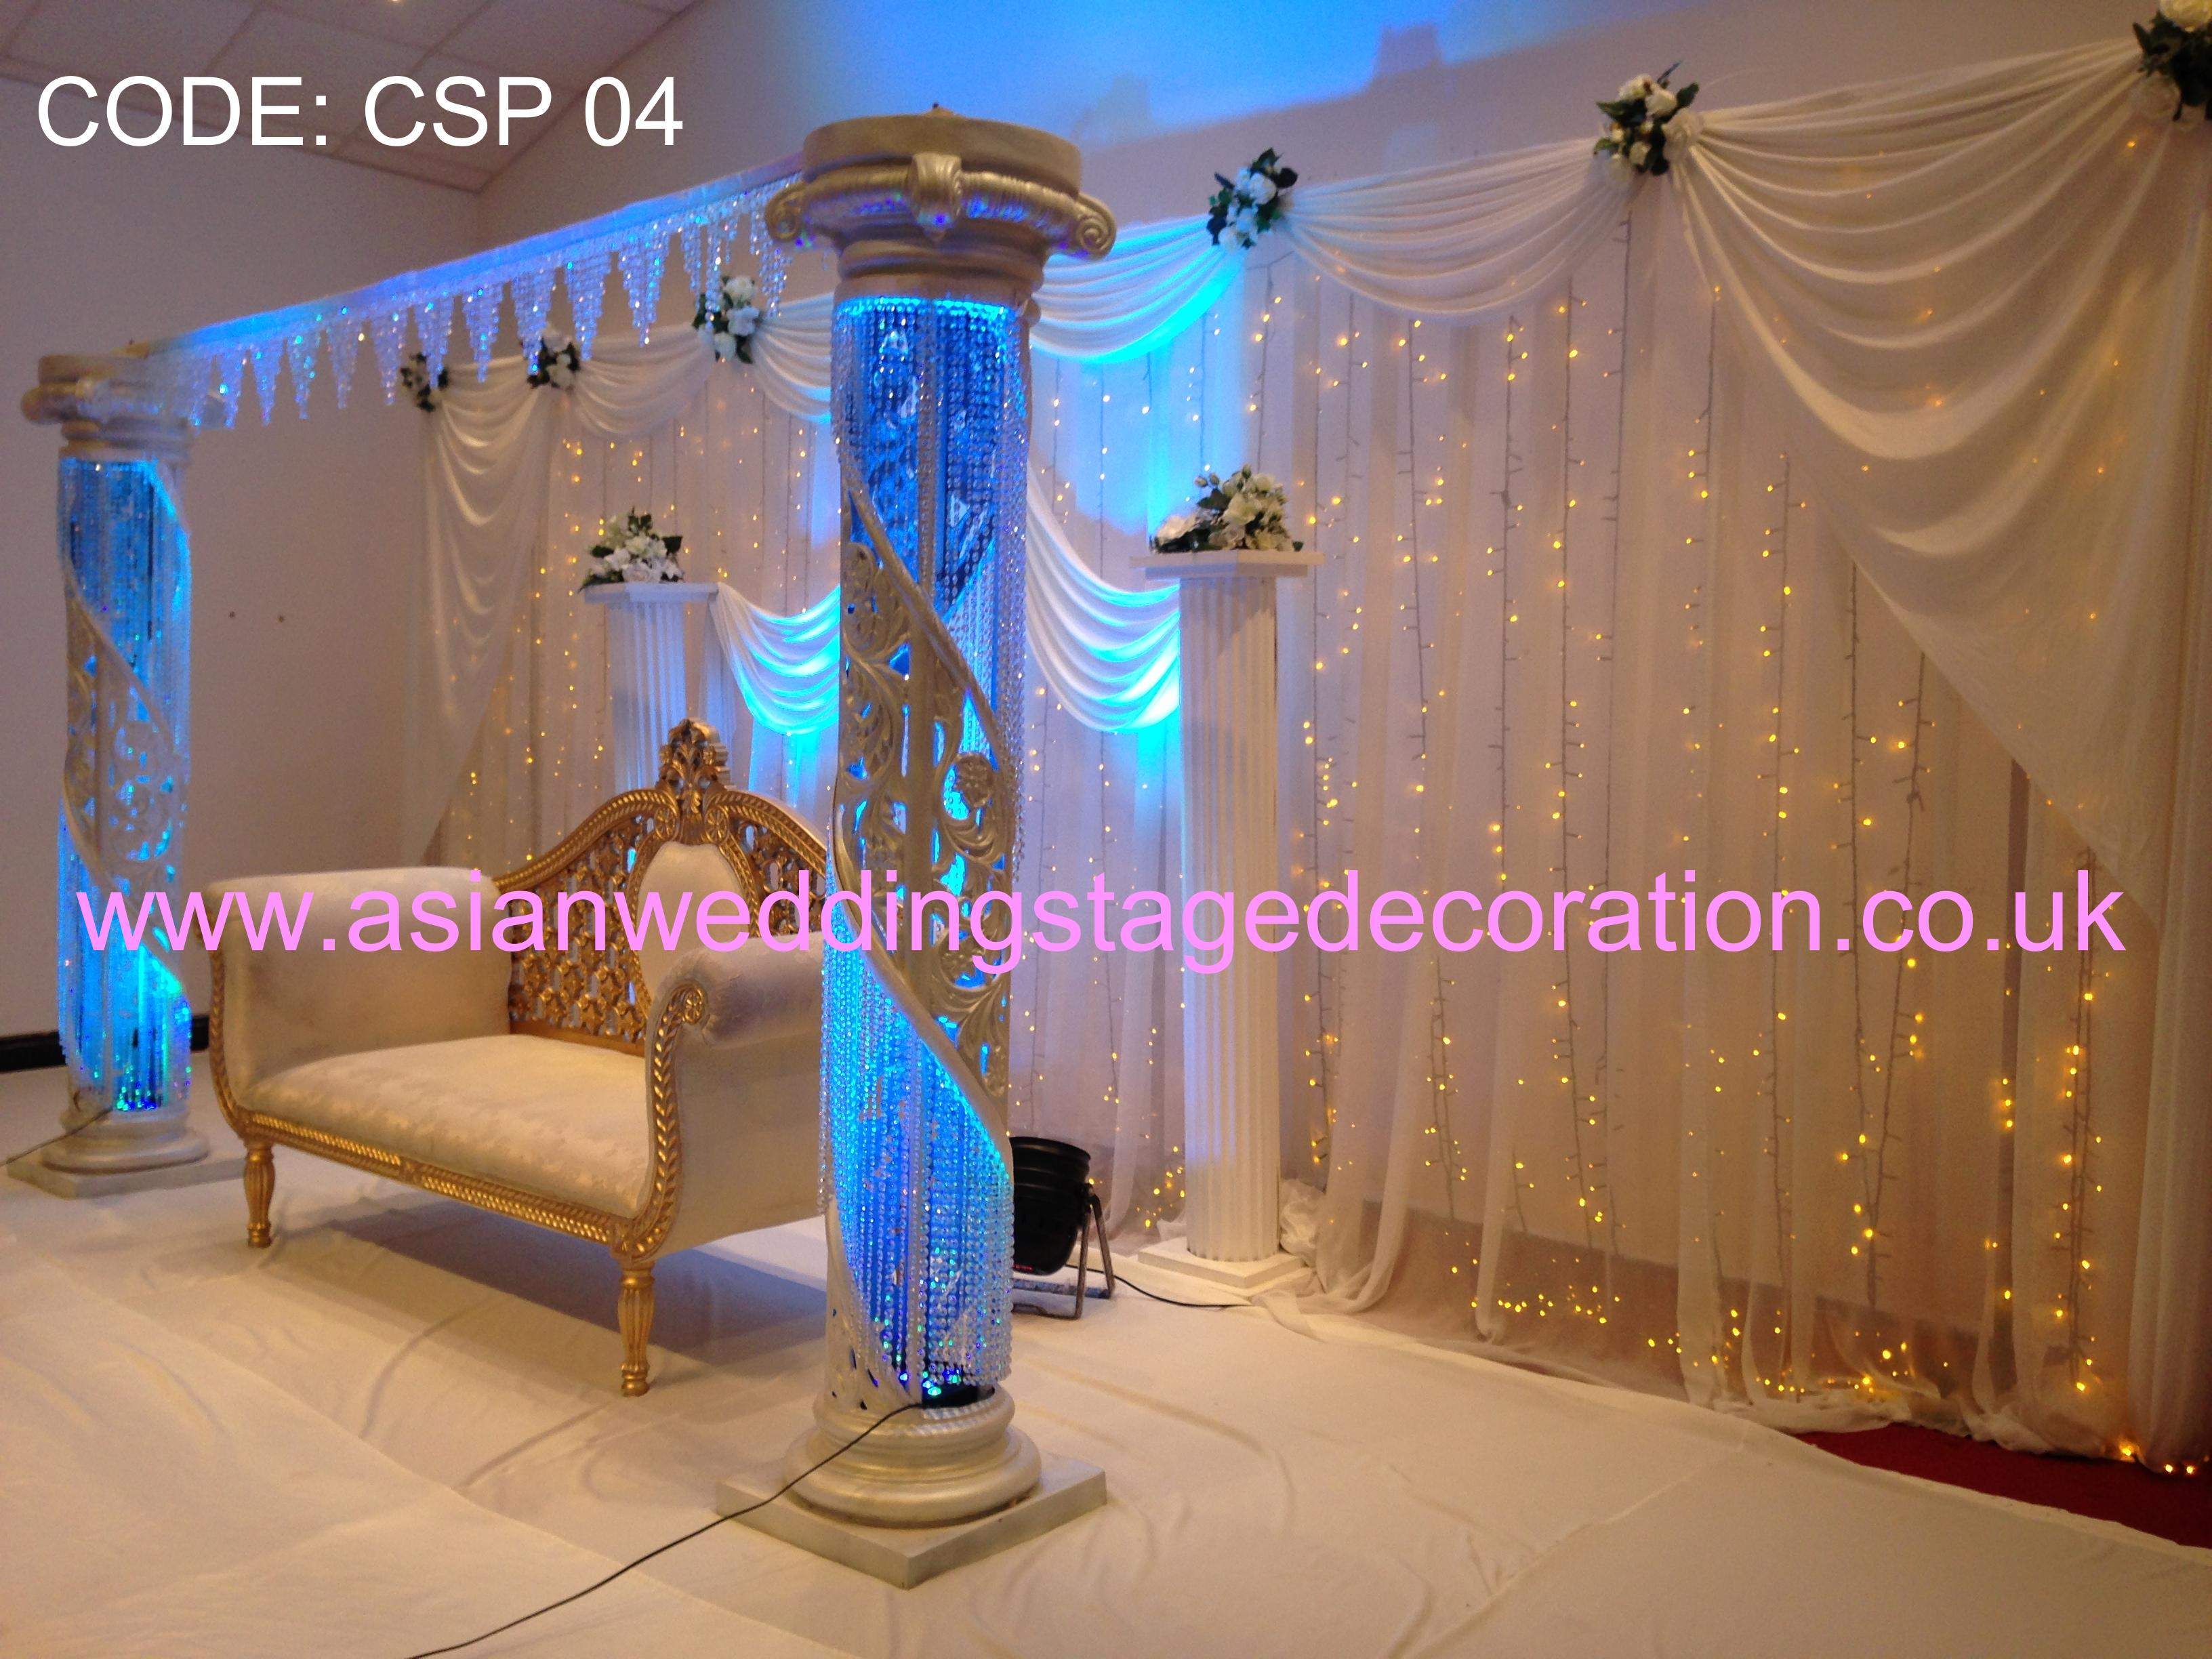 Asian wedding stages hire london birmingham and uks best wedding asian wedding stages hire london birmingham and uks best wedding services junglespirit Gallery